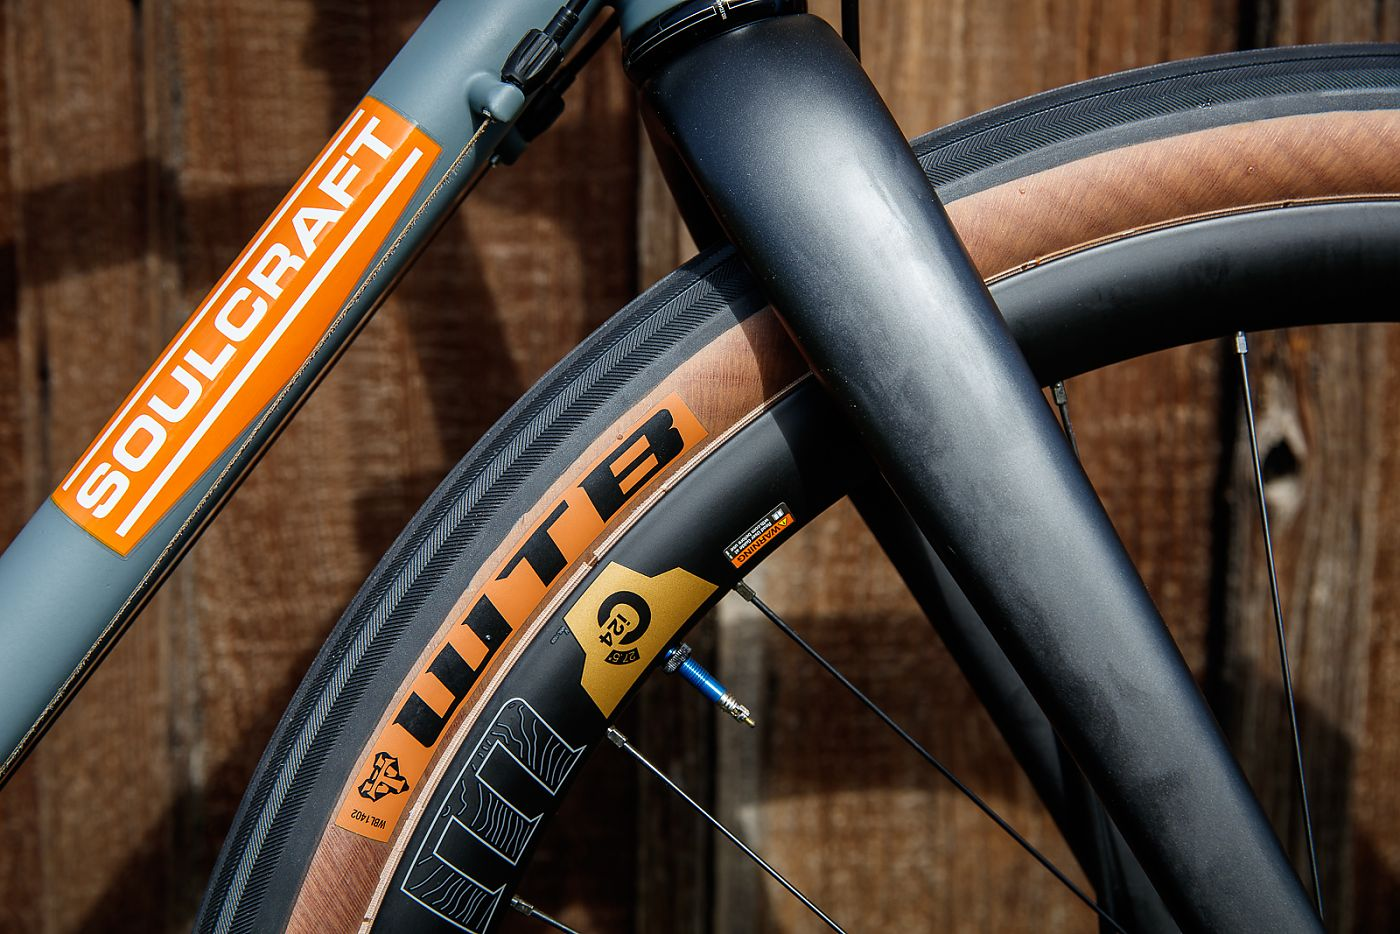 Wtb Introduces Road Plus Tire Size Bicycle Retailer